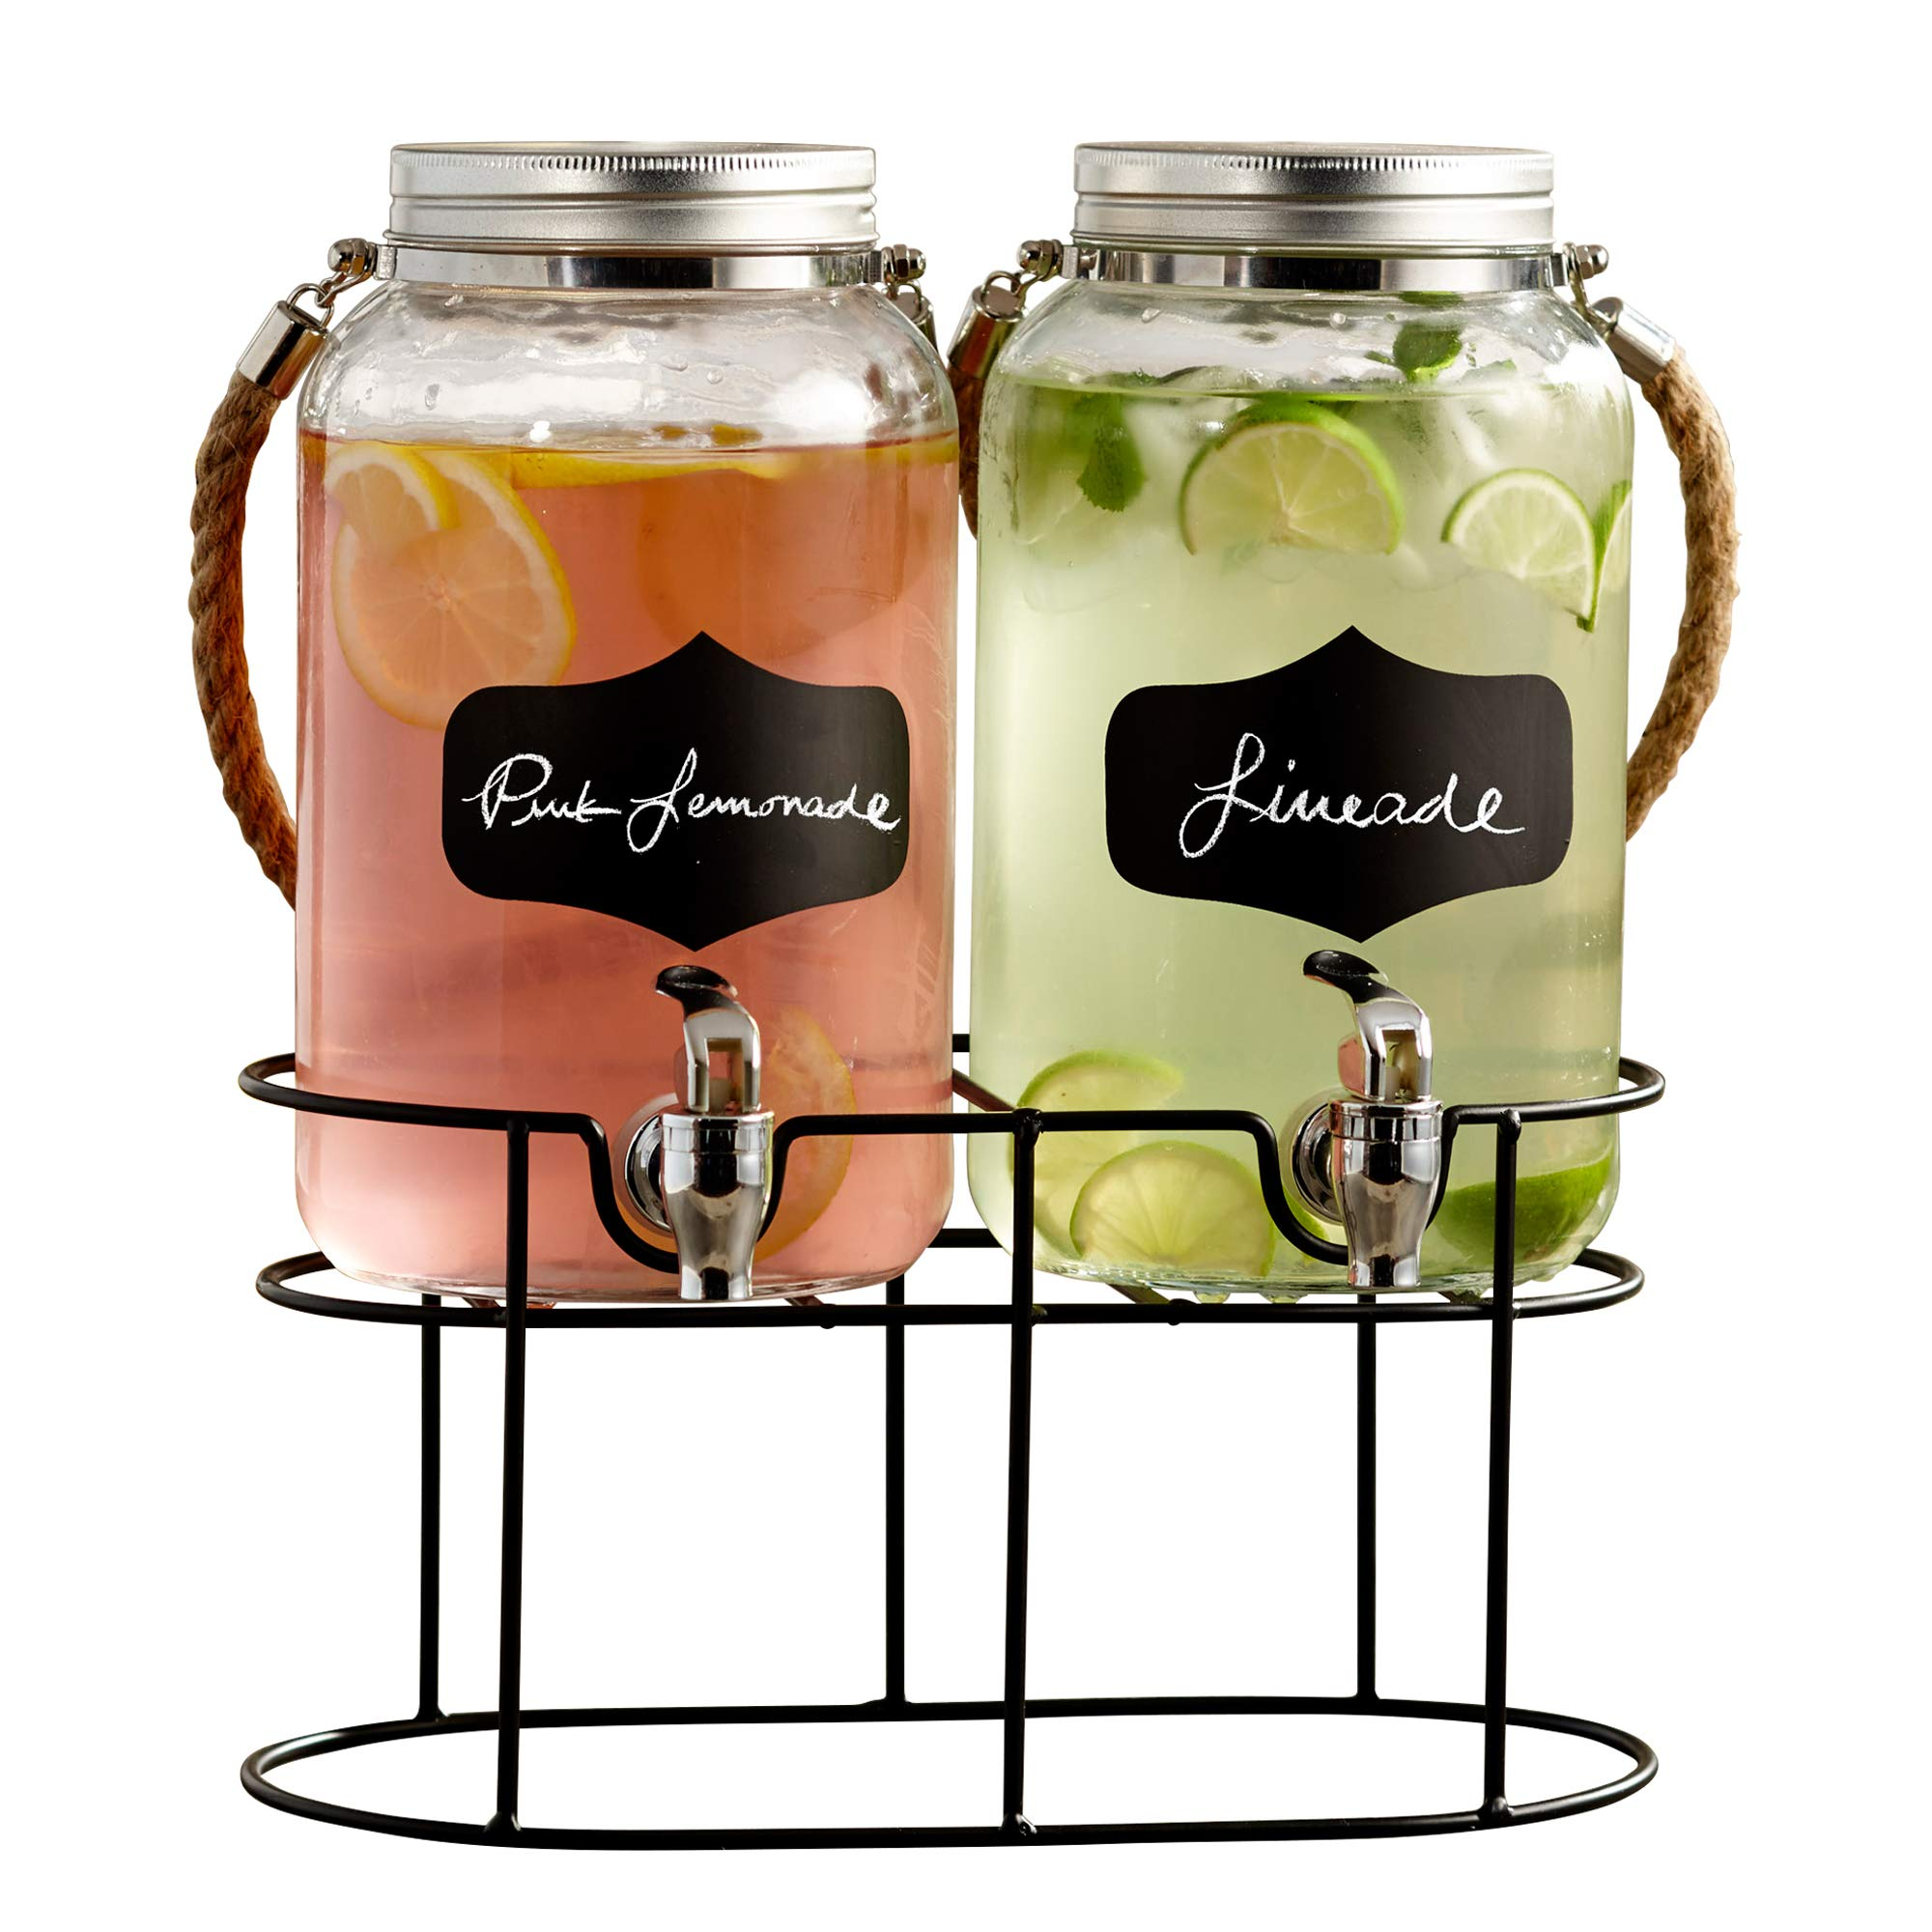 Style Setter Trent 210570-GB 3.8 Liters Each Glass Beverage Drink Dispenser Set with Metal Stand & Lid 14 x 7.5 x 13'' Clear